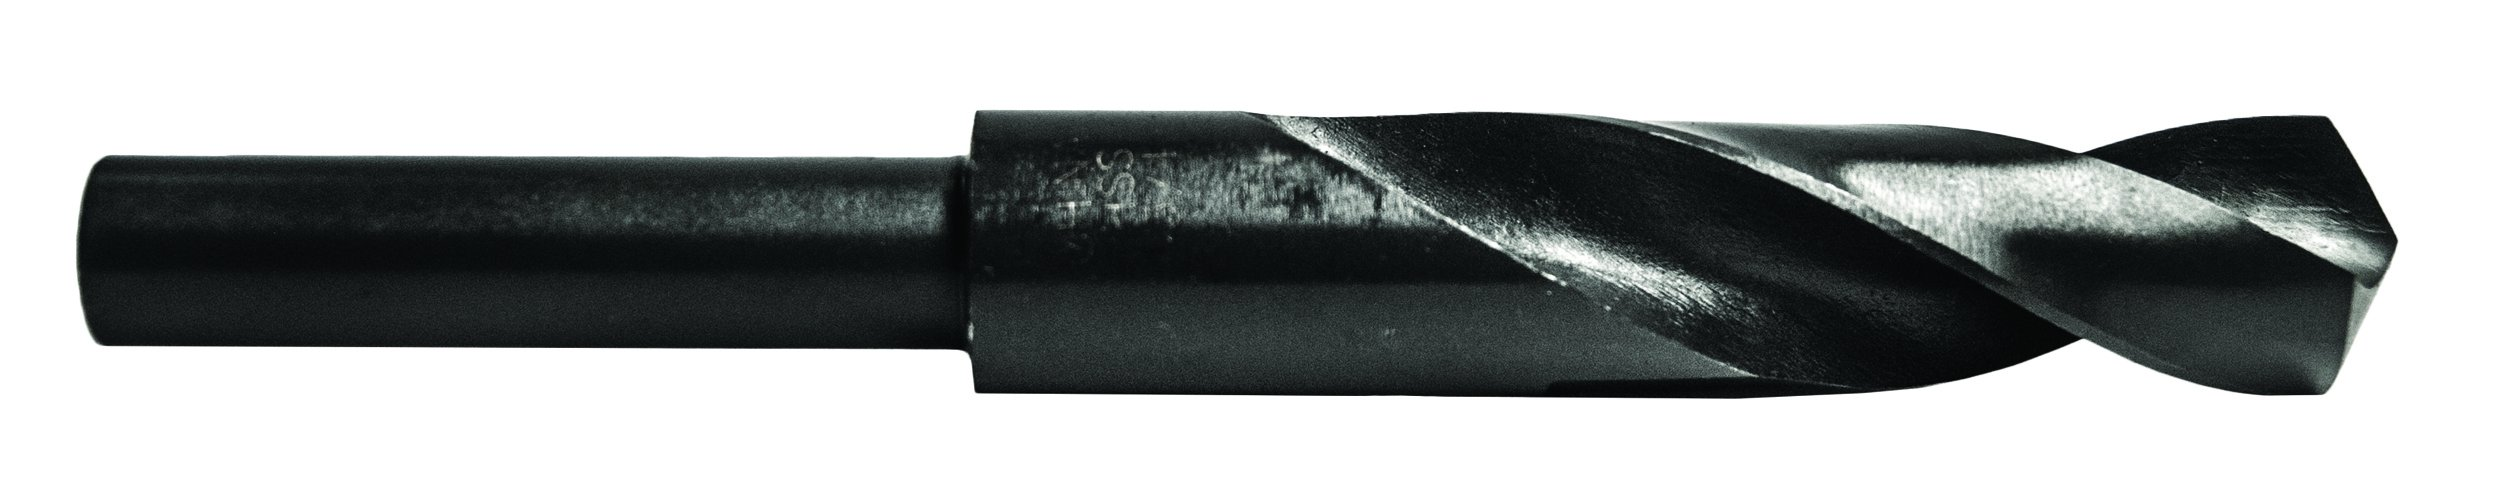 Century Drill and Tool 47341 41/64-Inch Economy Silver and Deming Drill Bit by Century Drill & Tool